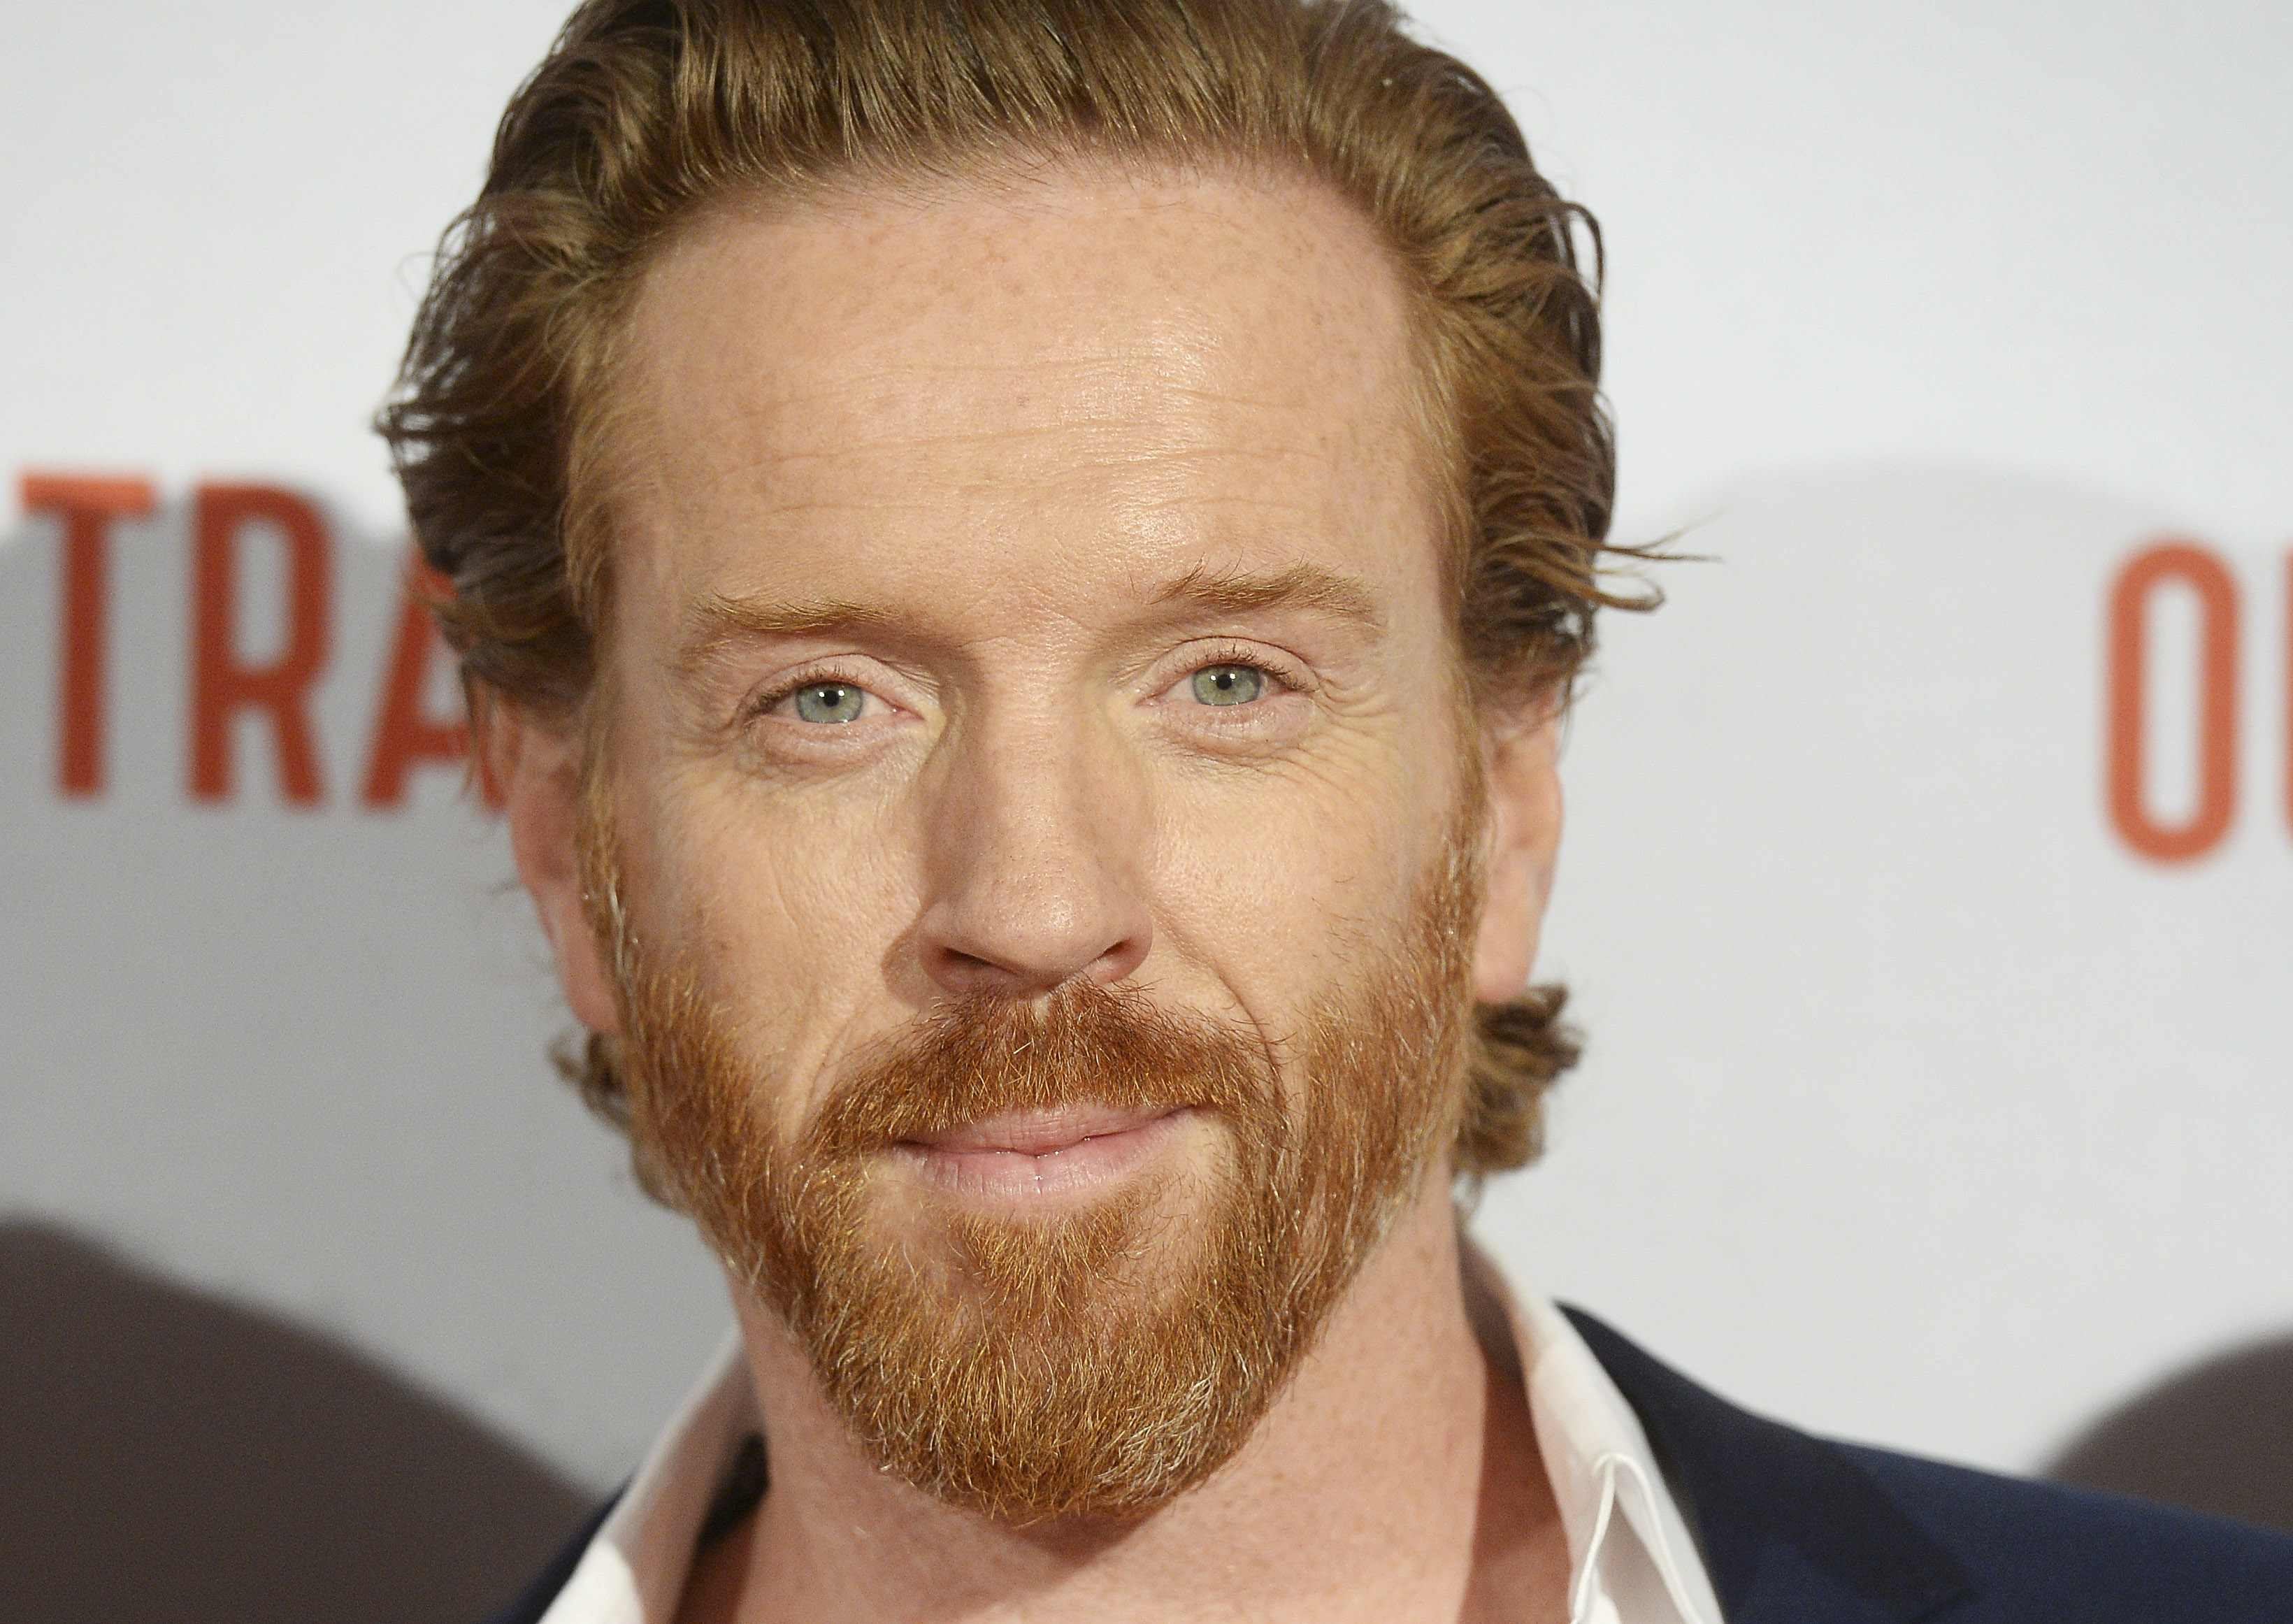 WATCH: Damian Lewis goes on a hilarious rant about Benedict Cumberbatch being a fake redhead